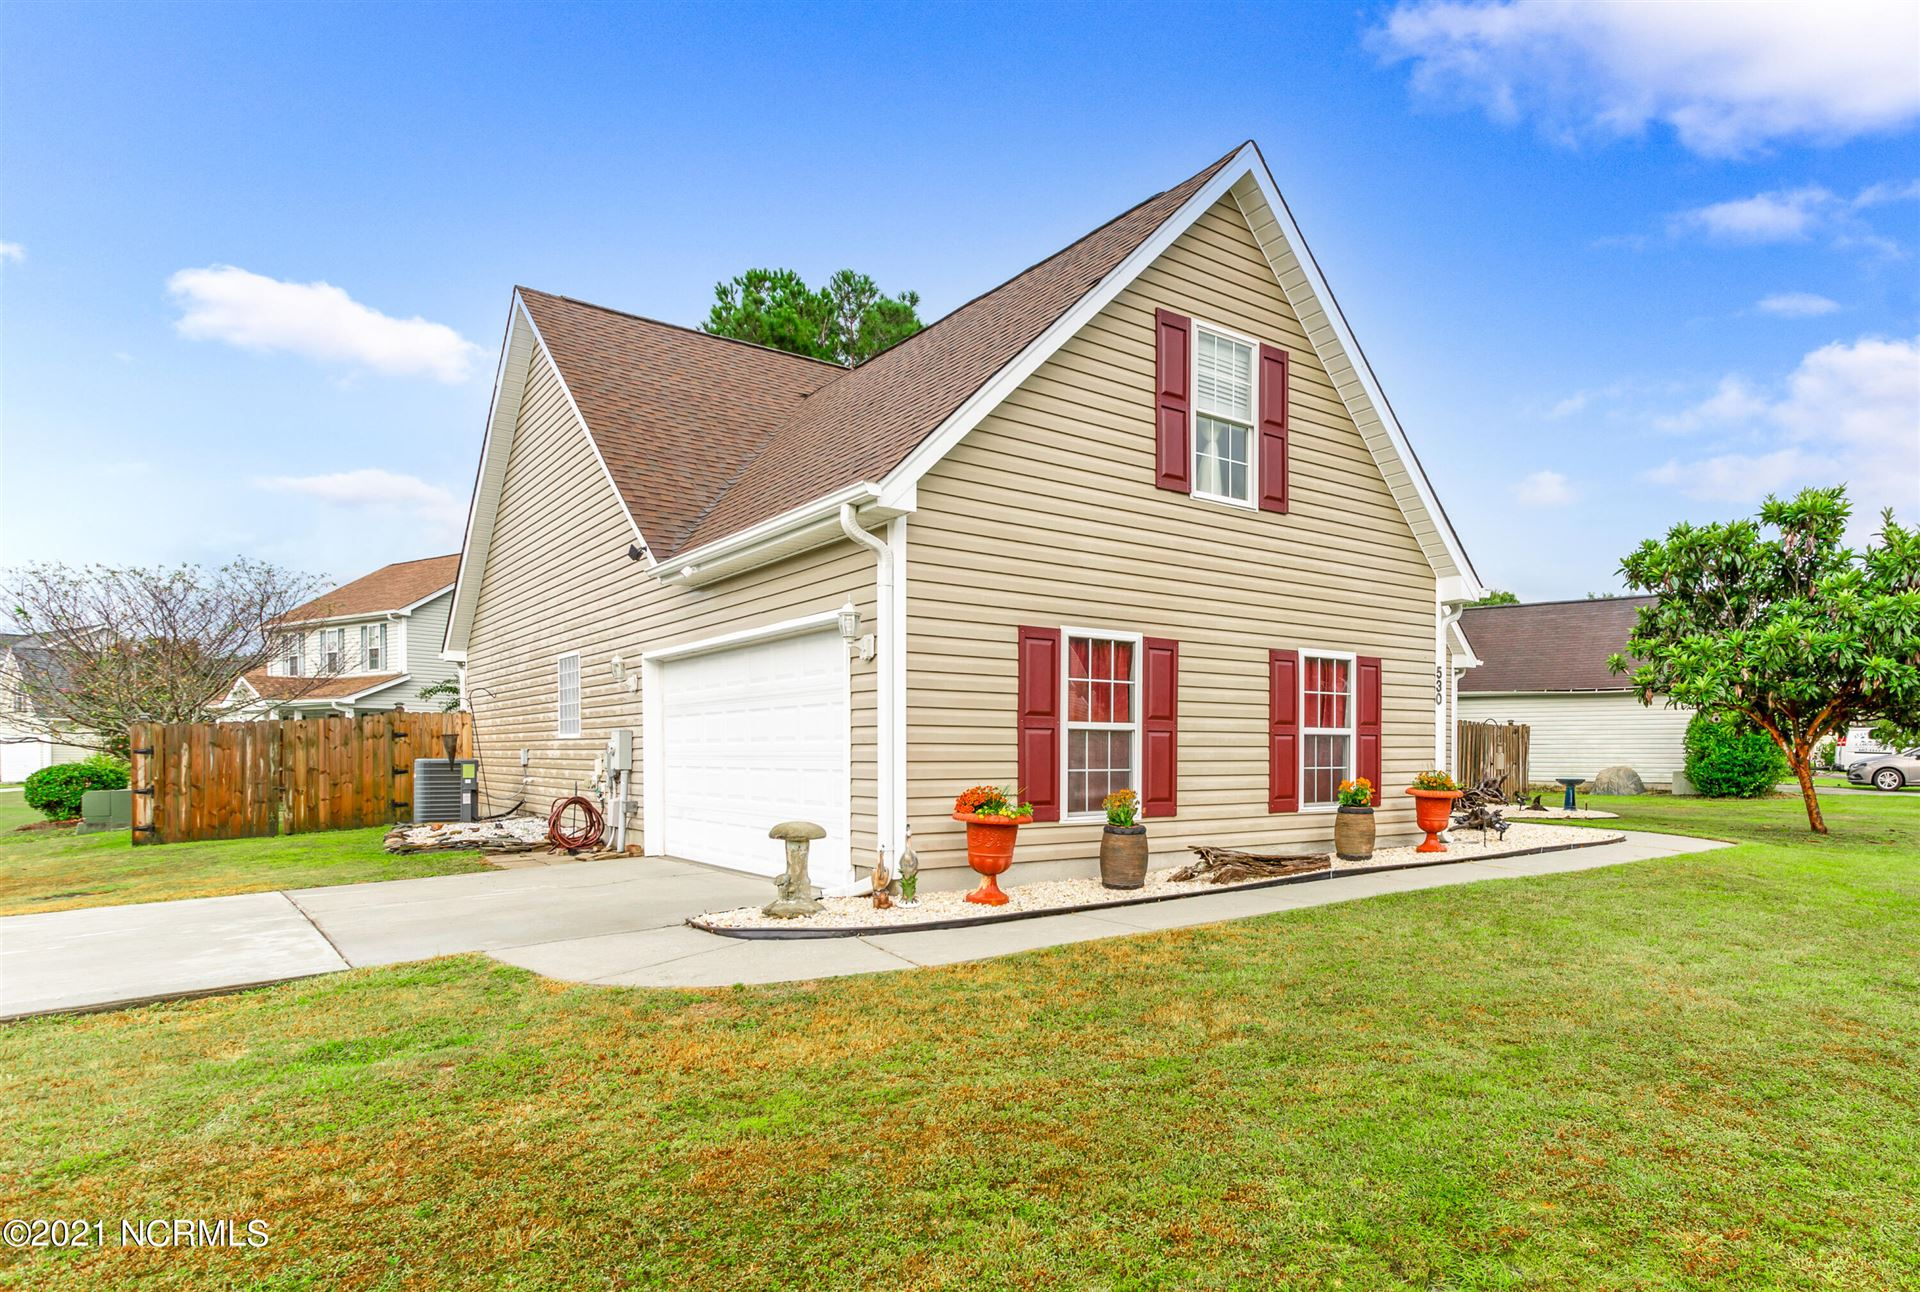 Photo of 530 Maple Branches Drive, Belville, NC 28451 (MLS # 100289998)